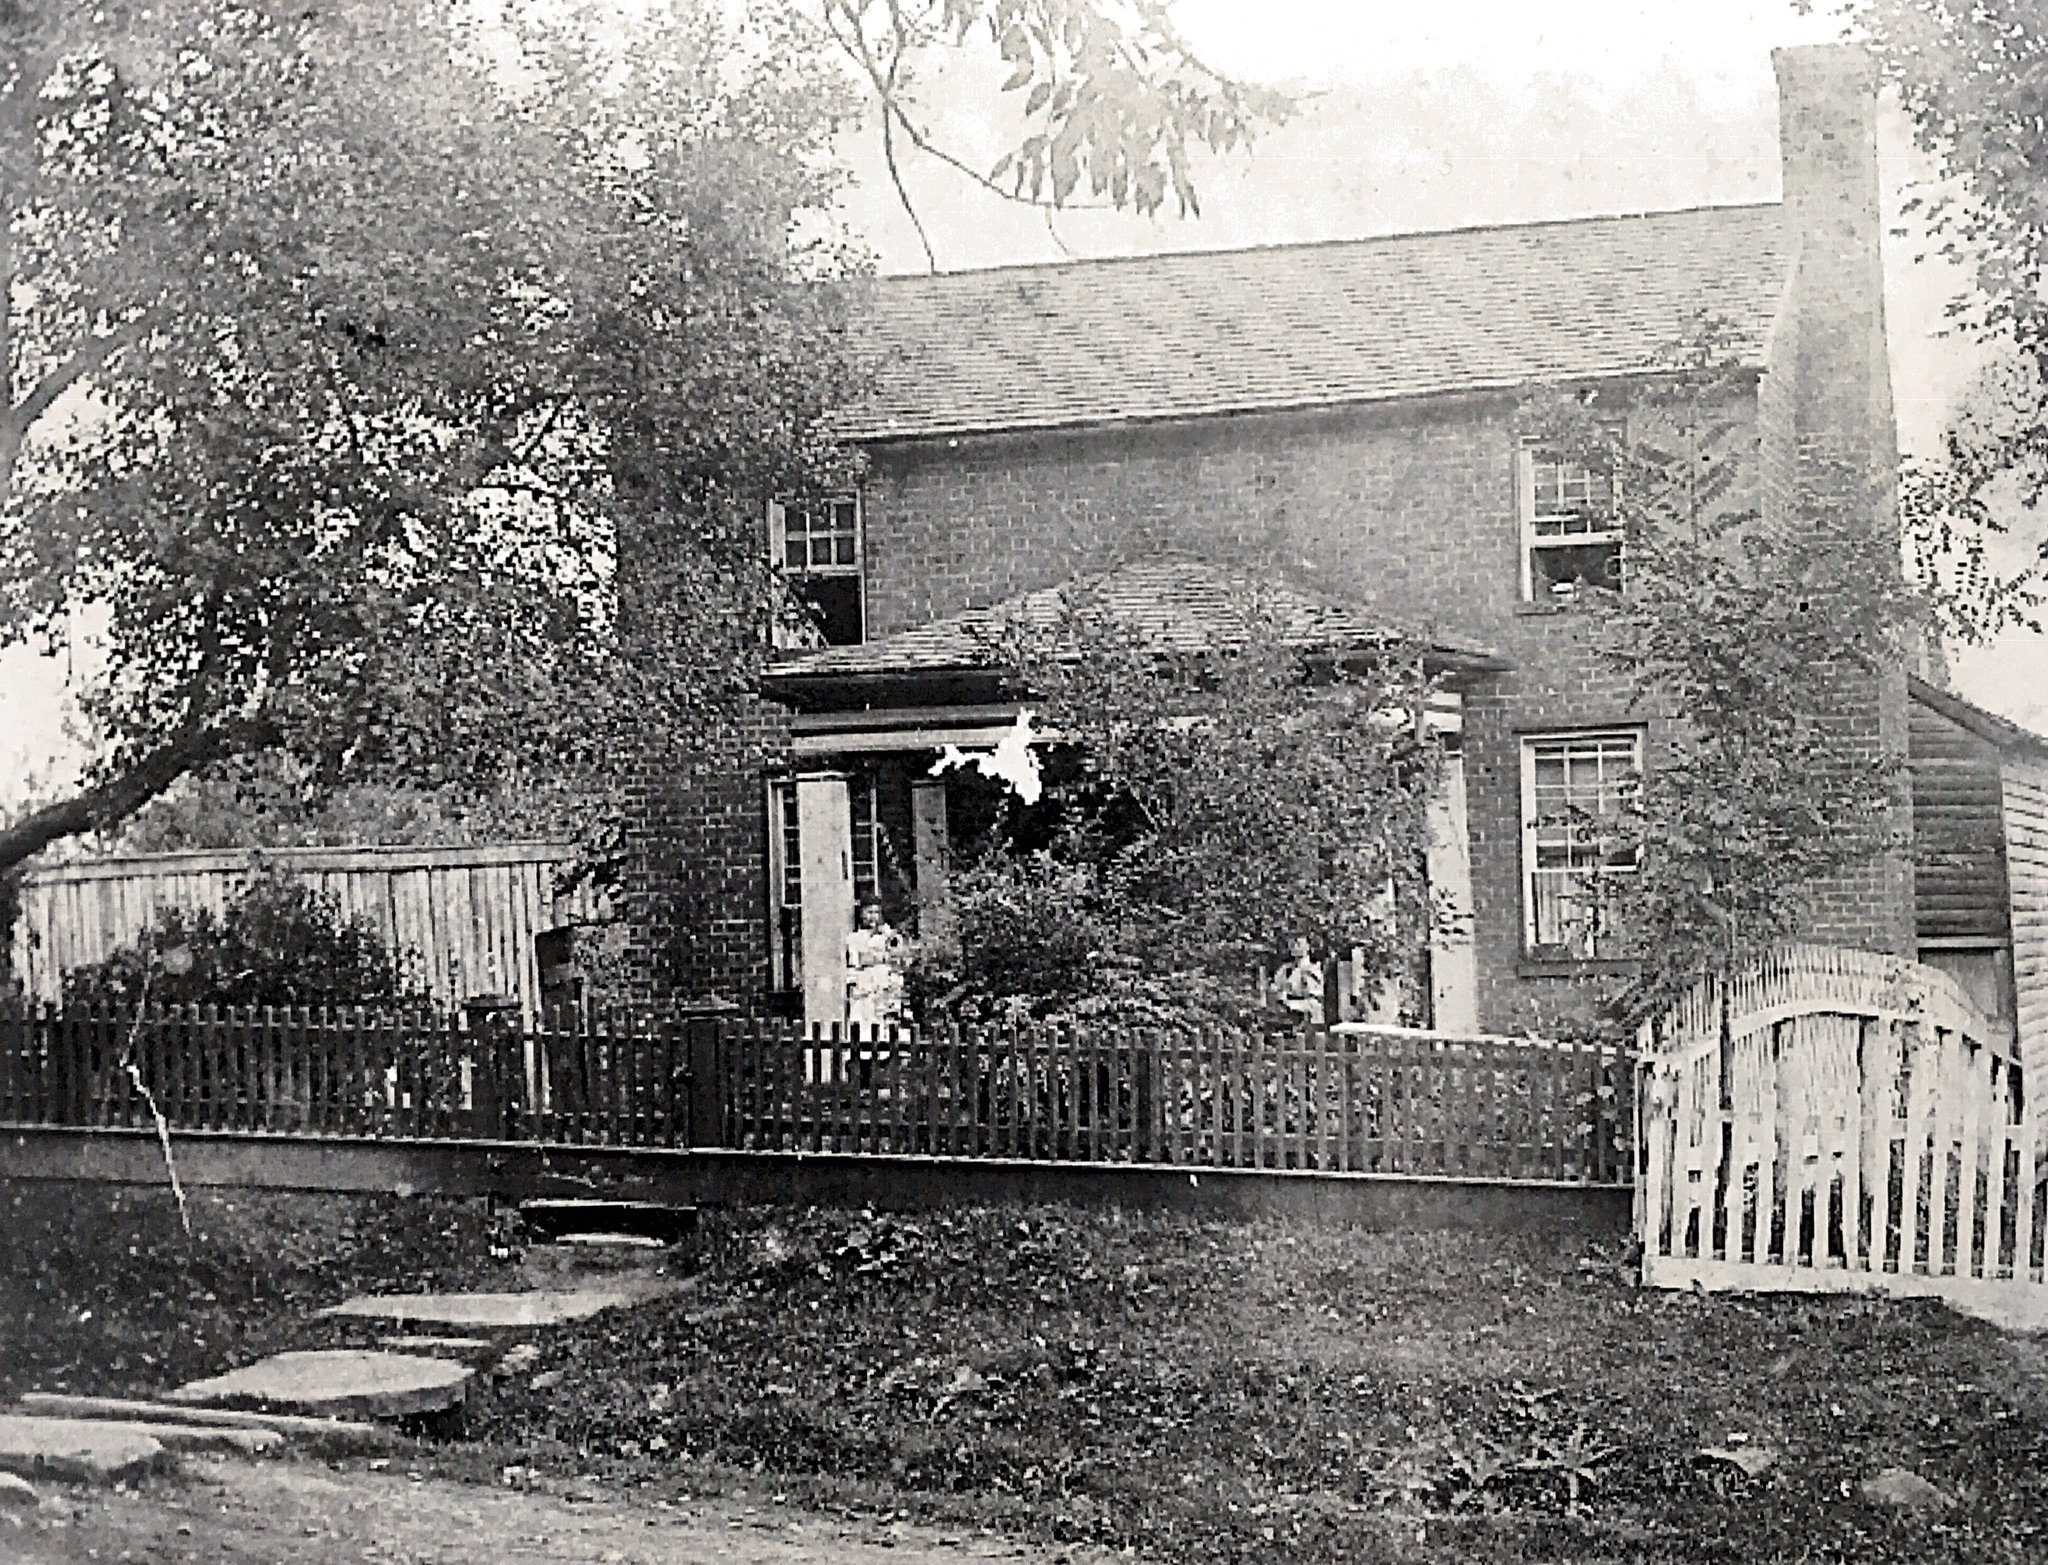 Photo of house before the additions. Courtesy of Greenbrier Historical Society. Date unknown.